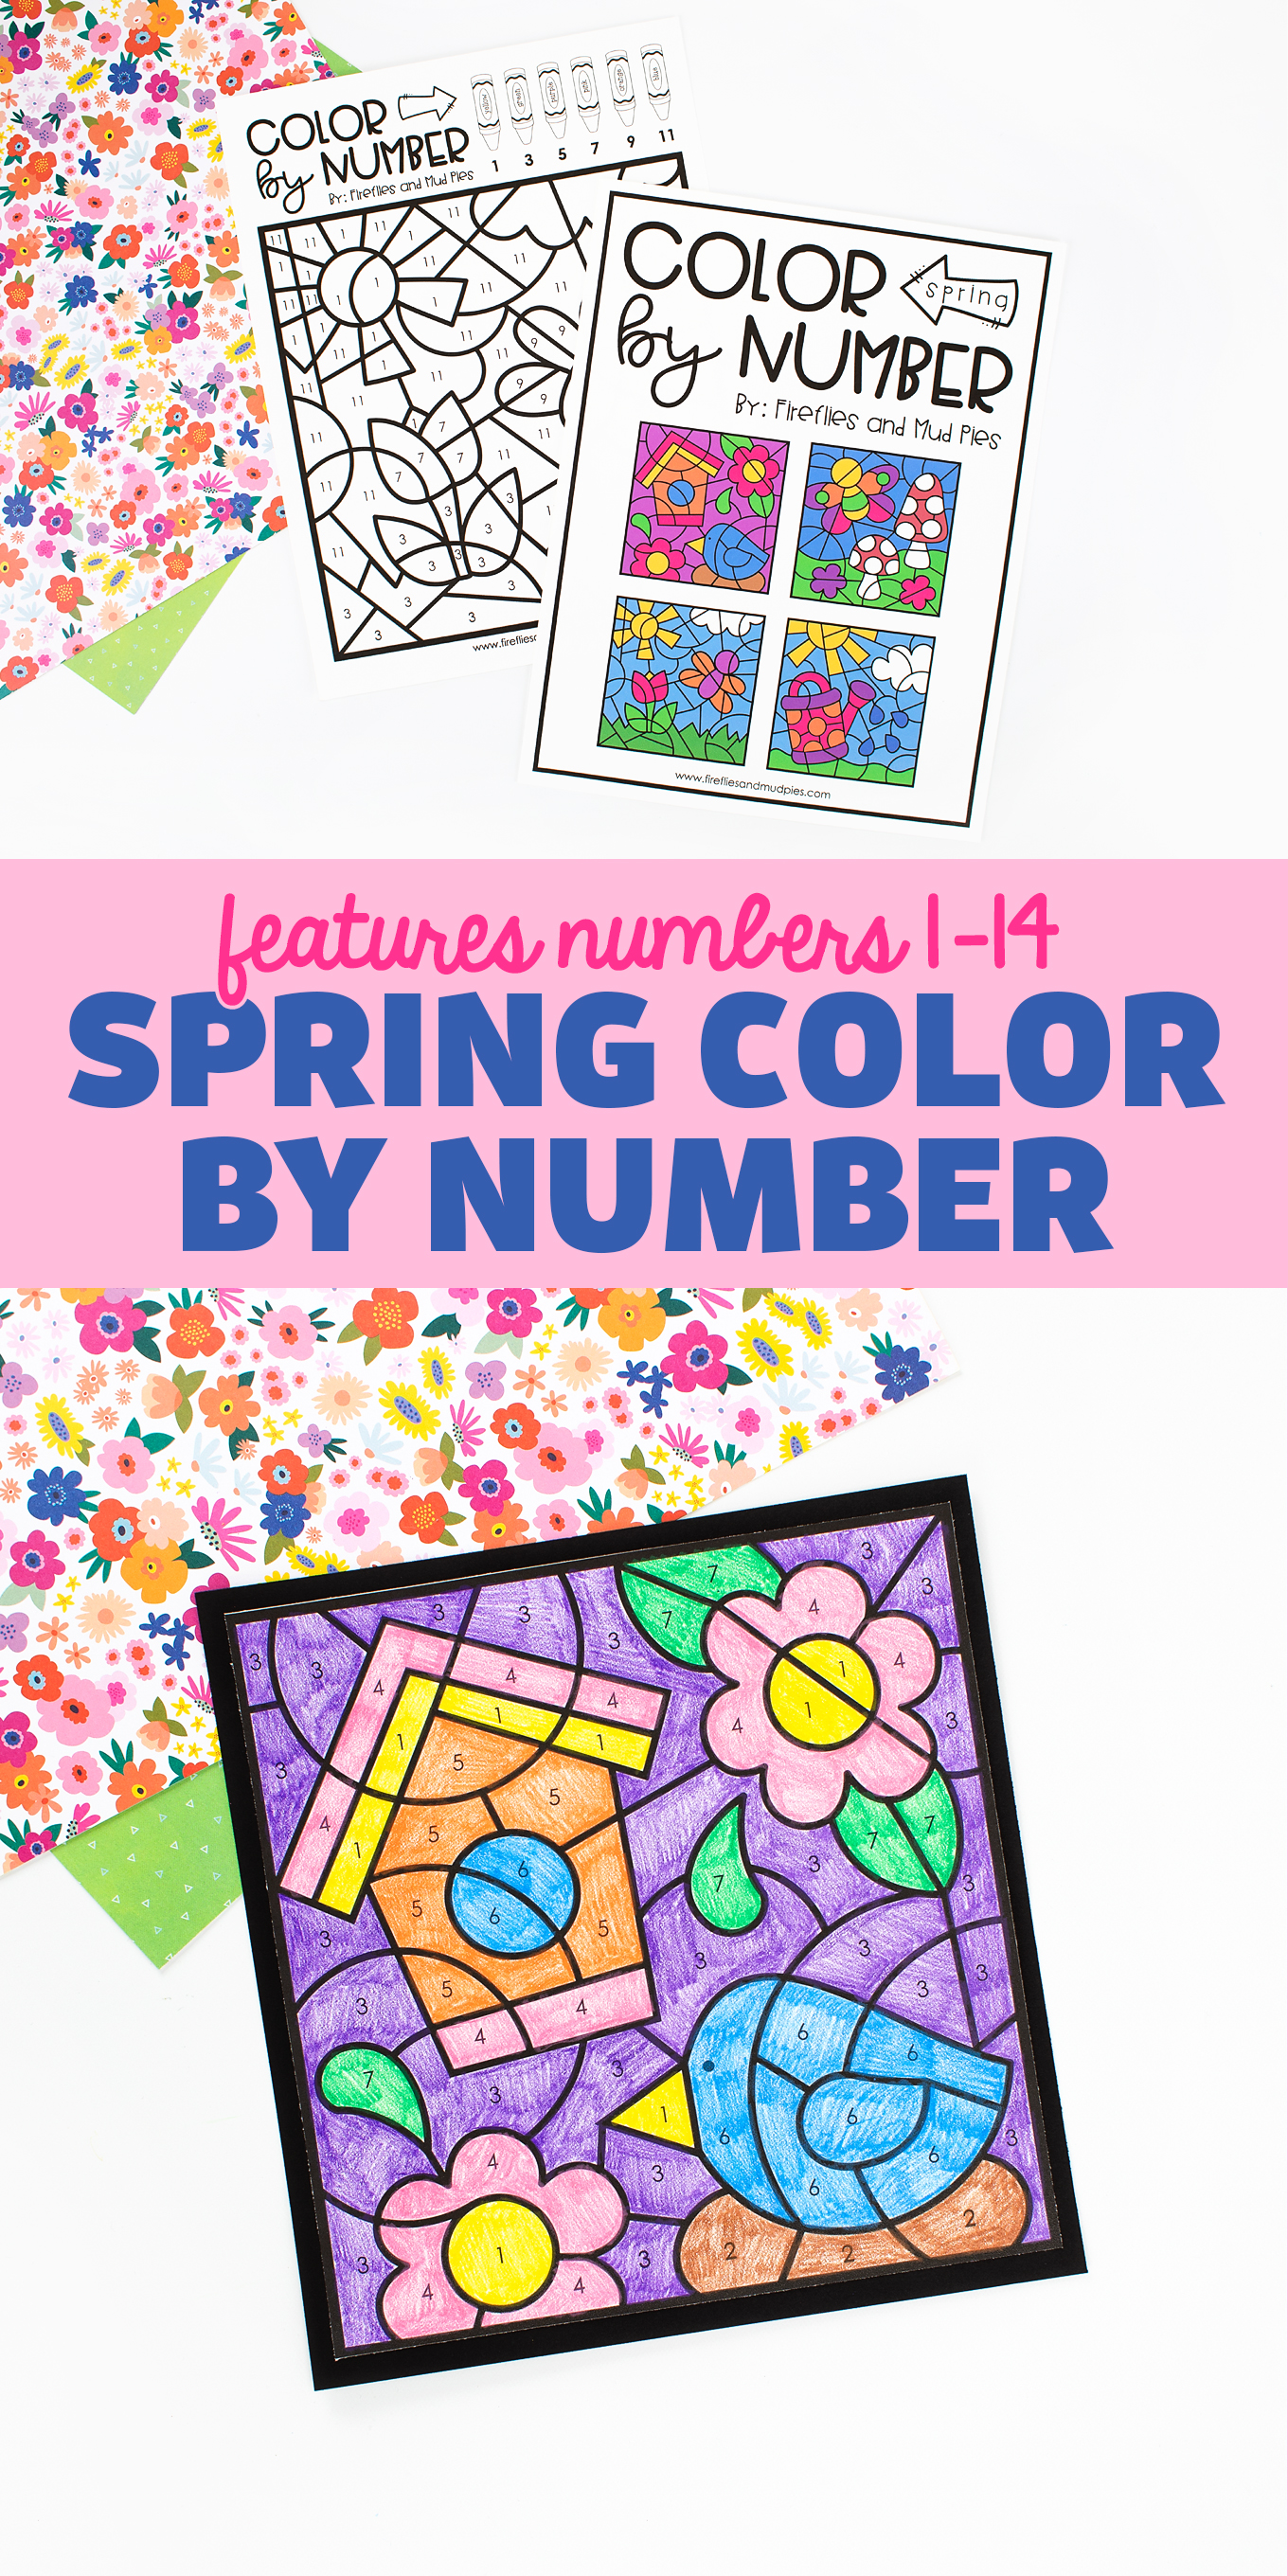 Download our free printable Spring Coloring by Number collection to use at school or home. This coloring activity set is perfect for reinforcing fine-motor skills, numbers 1–7, odd numbers up to 11, and even numbers up to 14. It's relaxing, fun, and perfect for welcoming blue skies, flowers, birds, and butterflies!  via @firefliesandmudpies